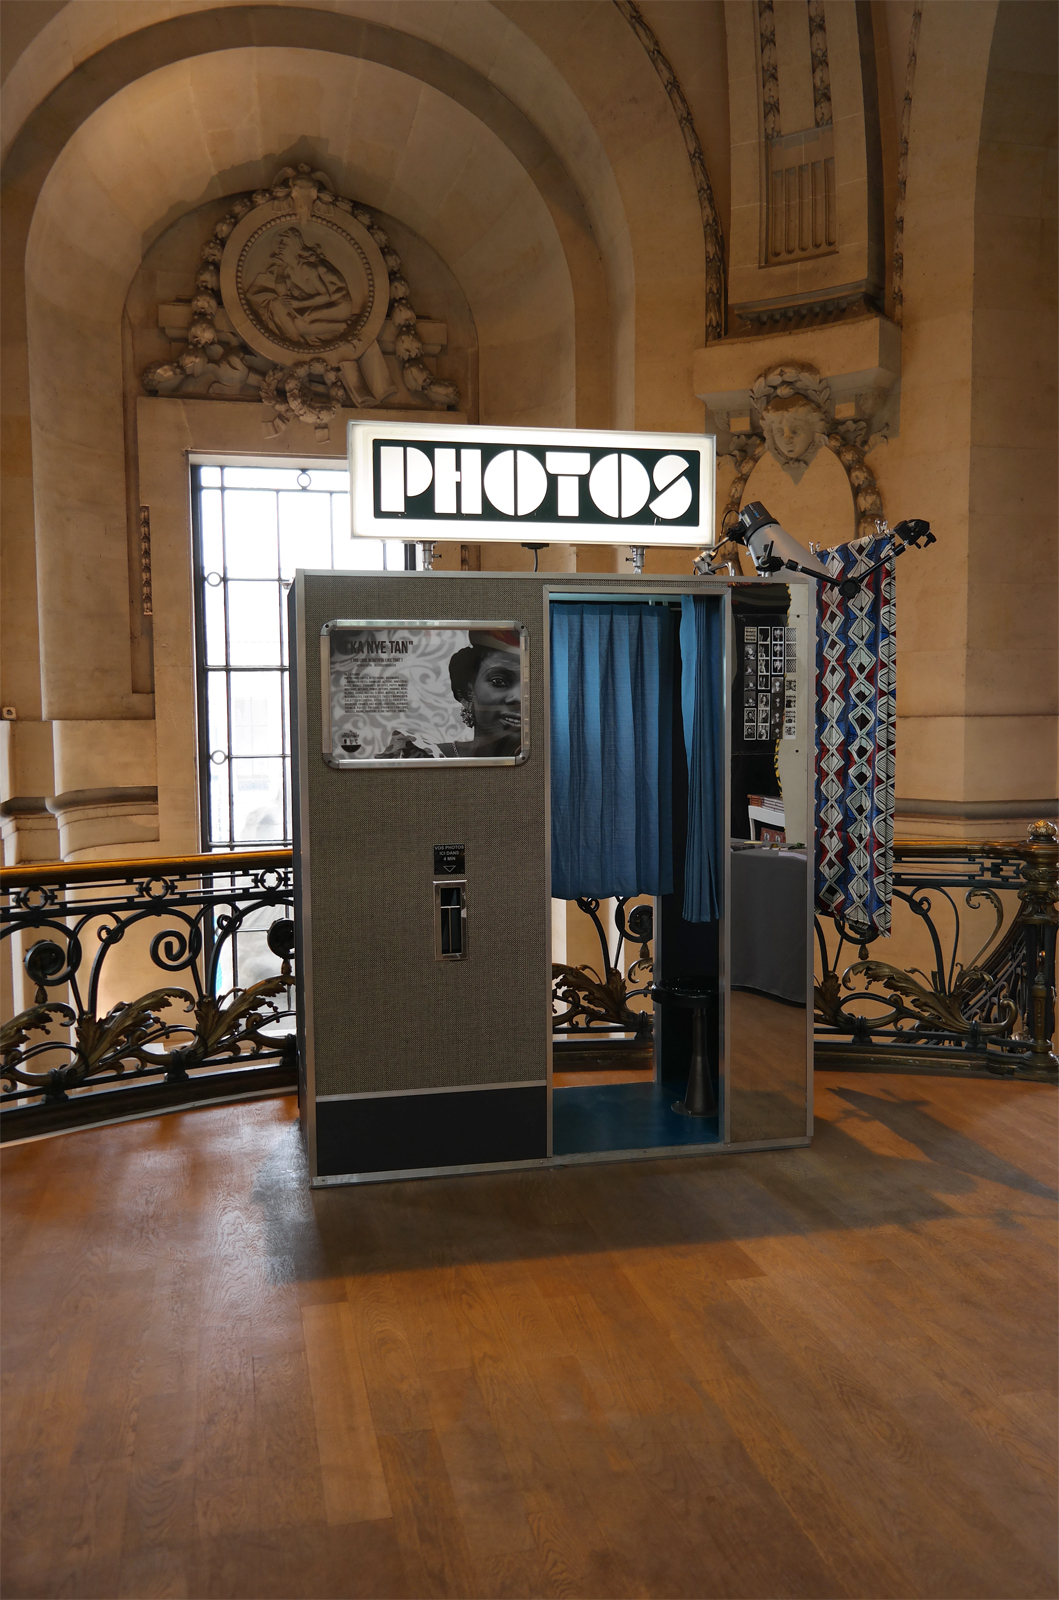 Grand palais archives - Grand palais expo horaires ...